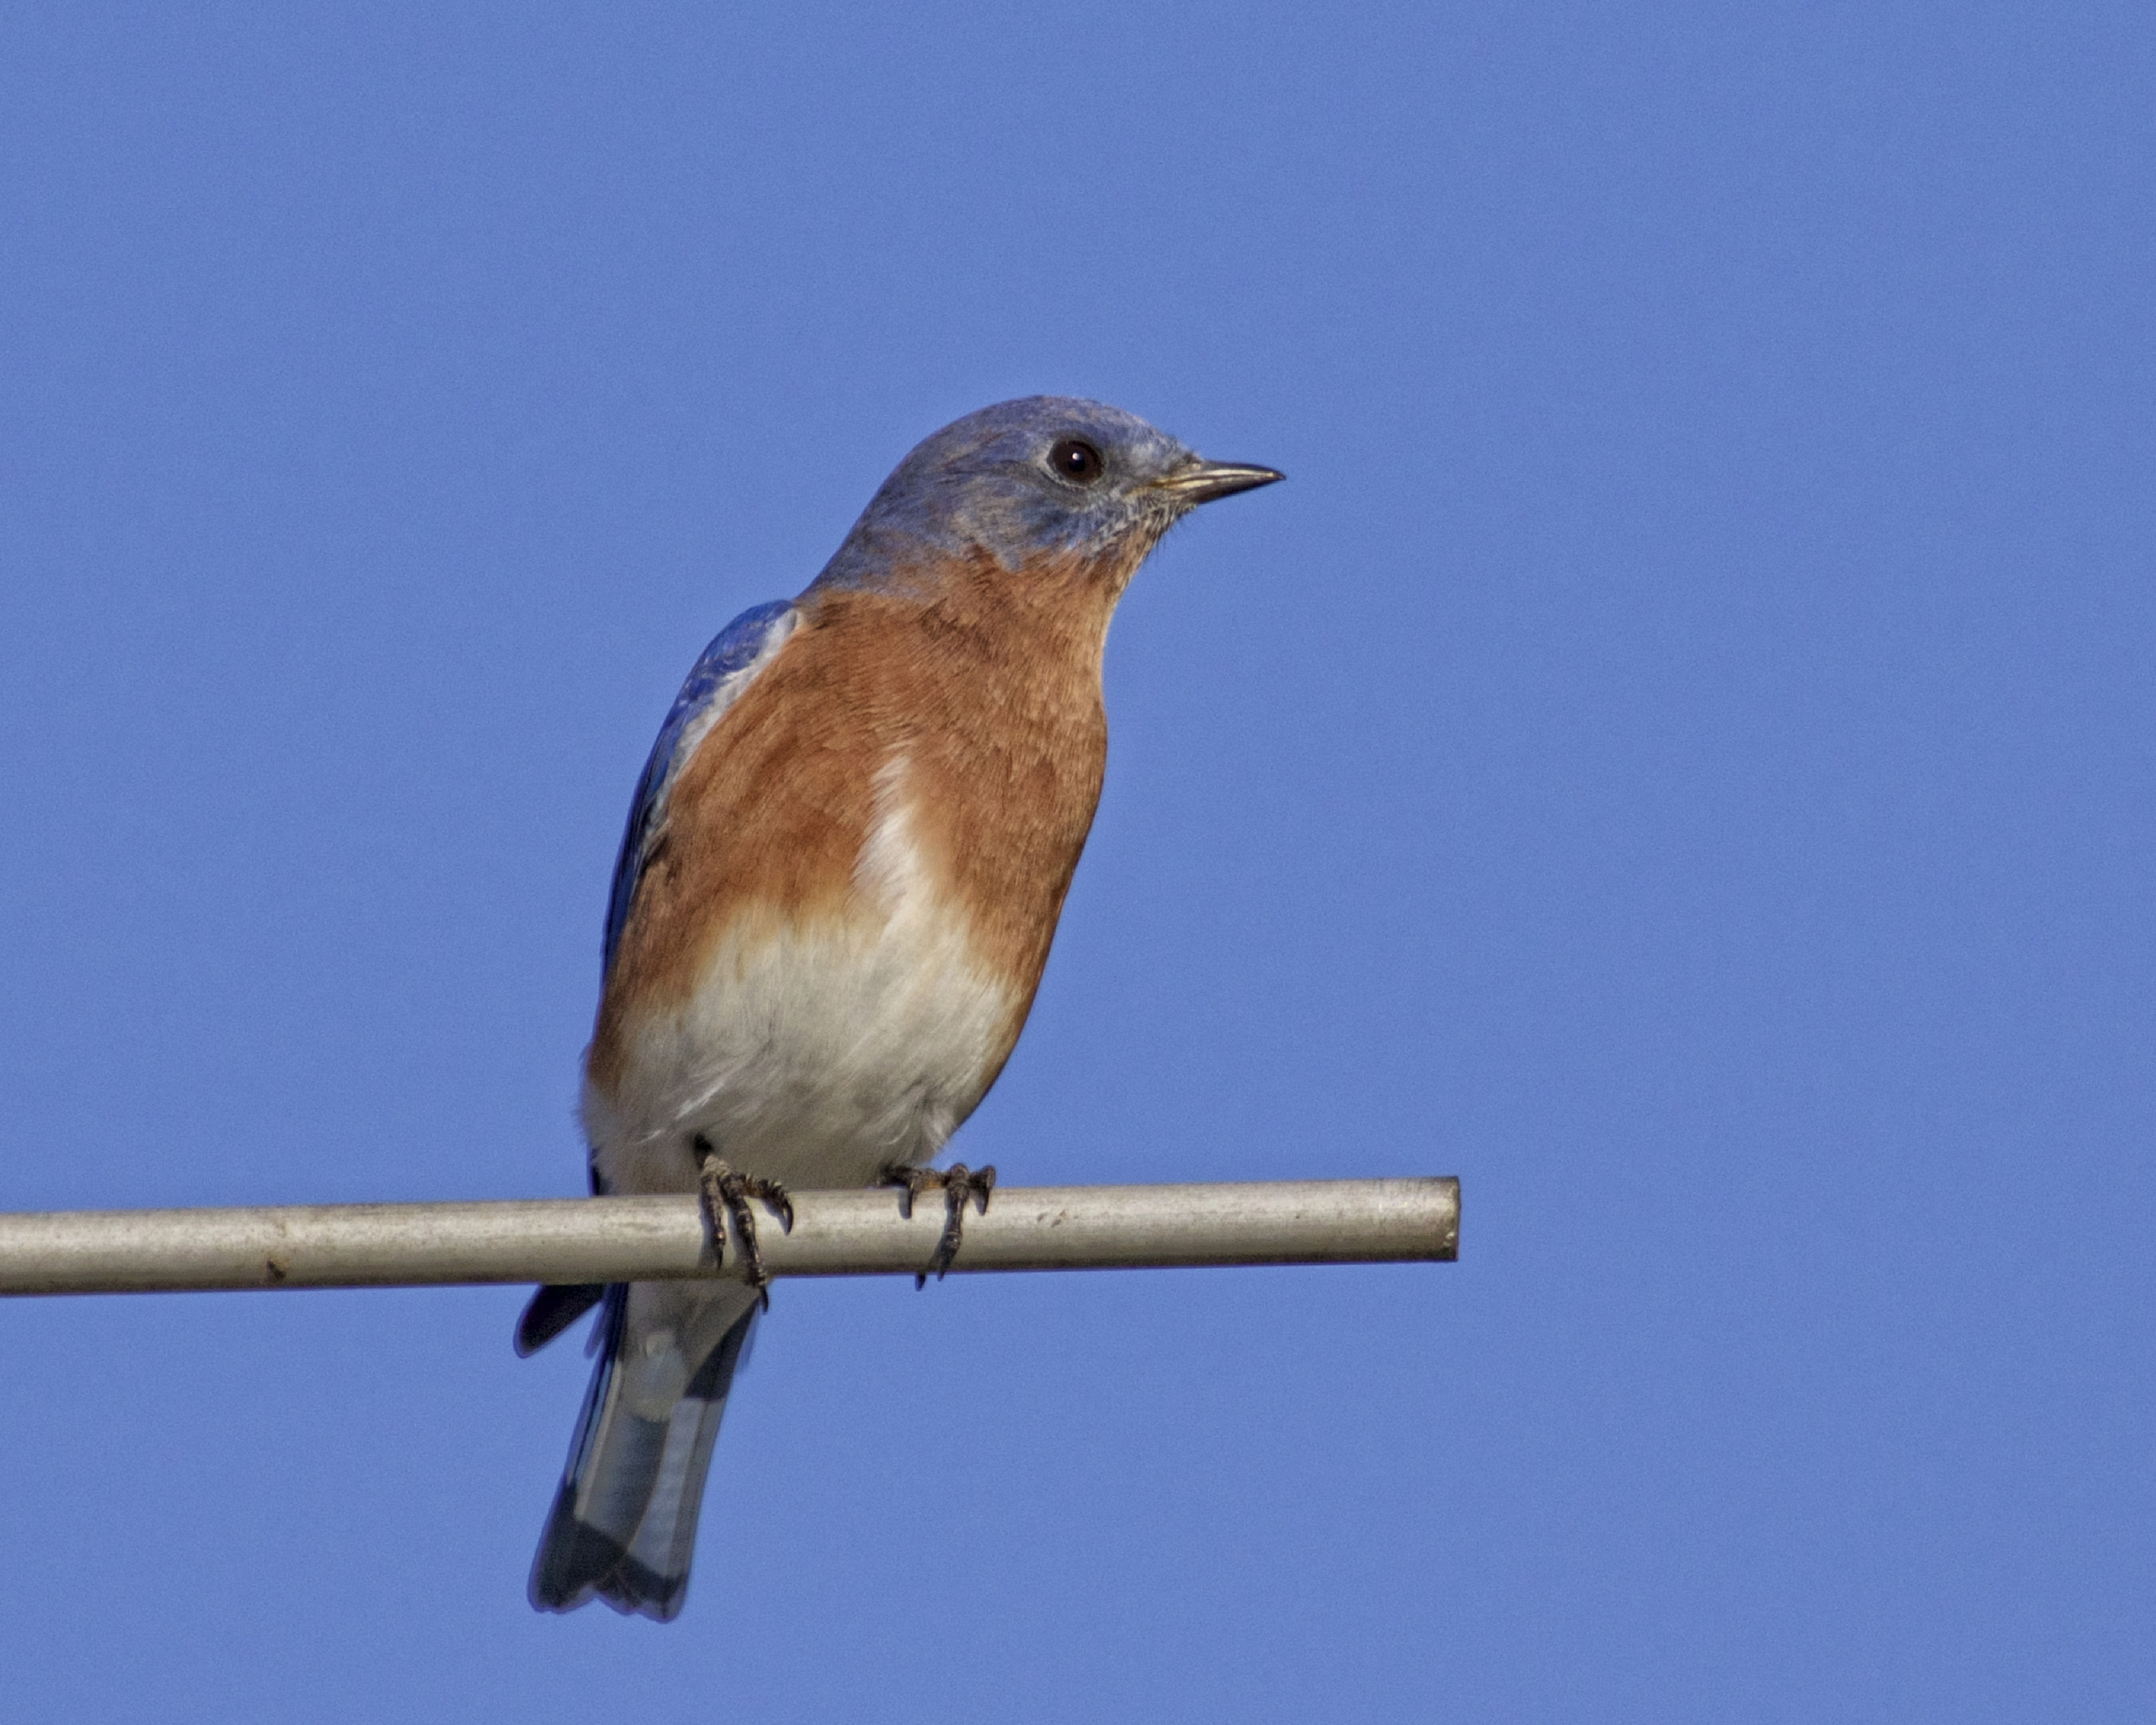 So Mr. Bluebird...don't even think about poopin on my shoulder! Be Blessed.